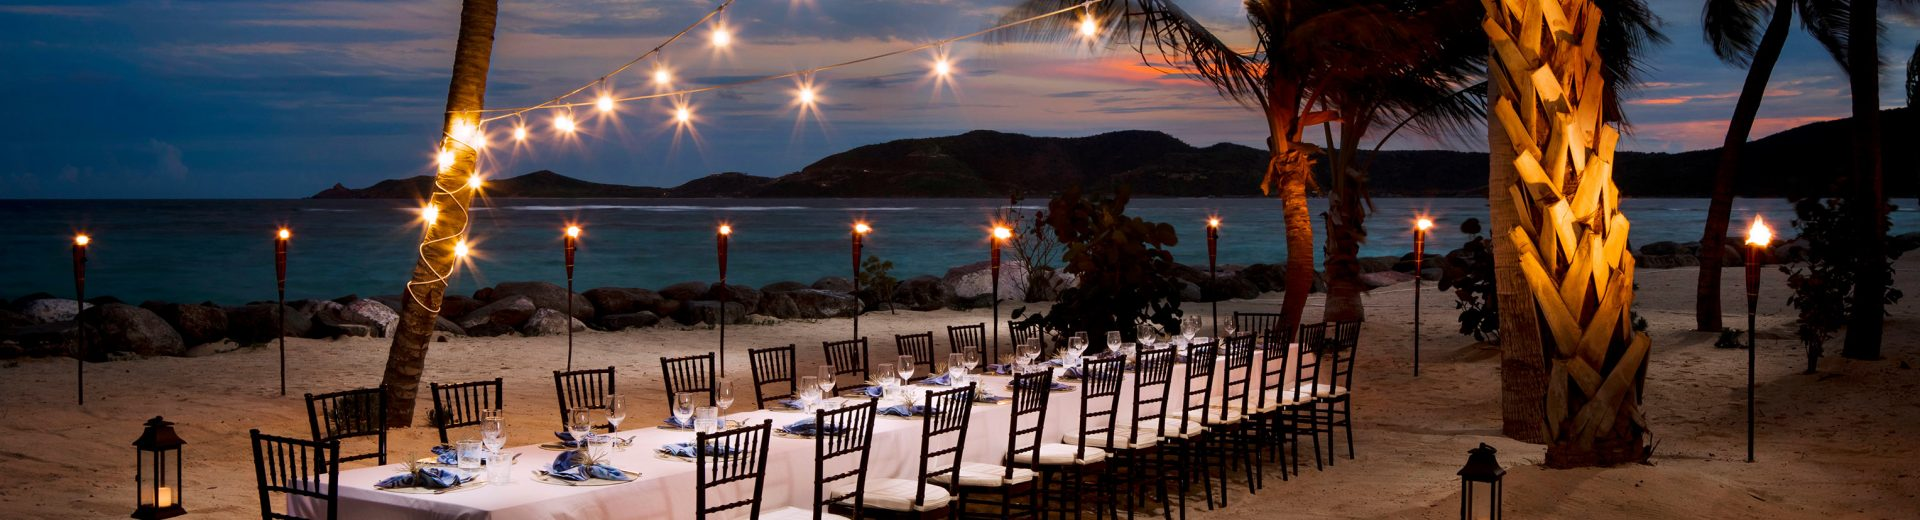 Necker Island dinner party on beach